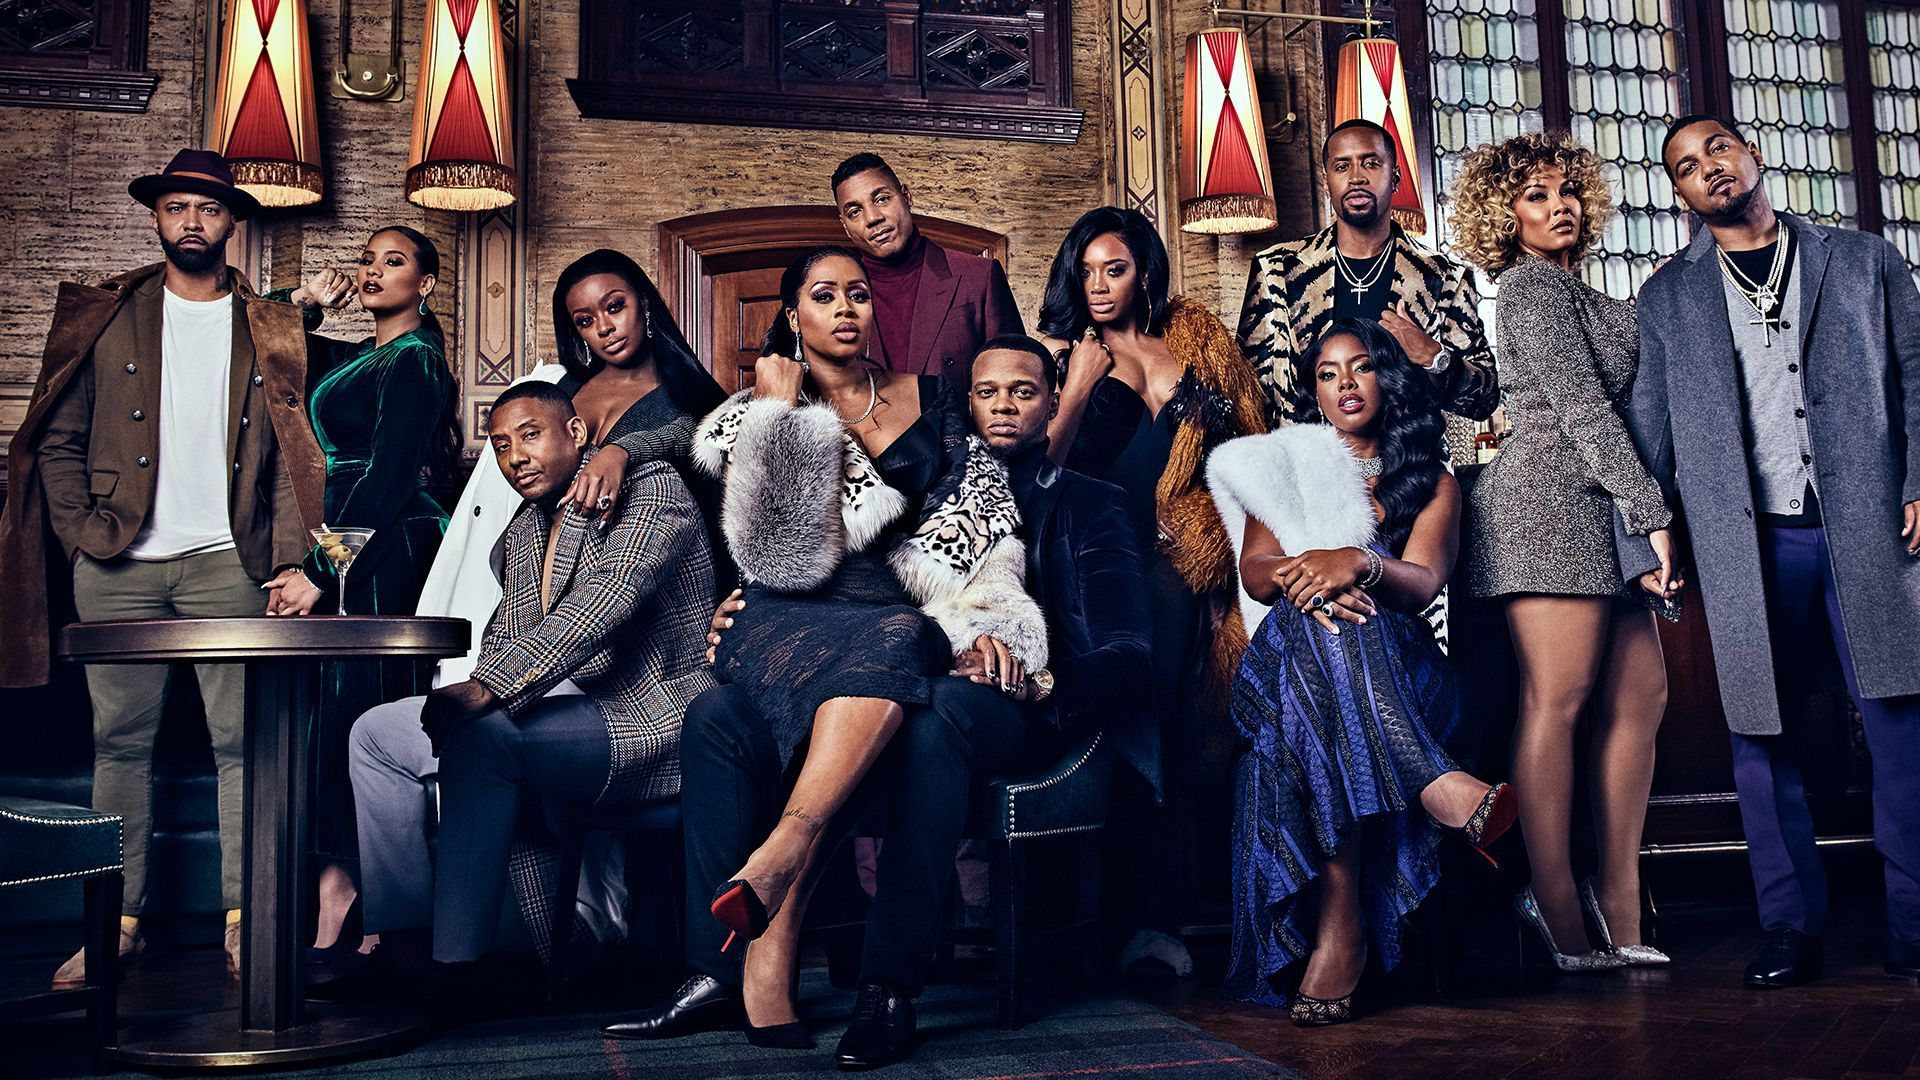 The 'Love & Hip Hop' Franchise When was it on? Love & Hip Hop: New York first started airing in 2011, followed in 2012 by Love & Hip Hop: Atlanta , Love & Hip Hop: Hollywood in 2014, and Love & Hip Hop: Miami is the most recent, premiering in 2018.